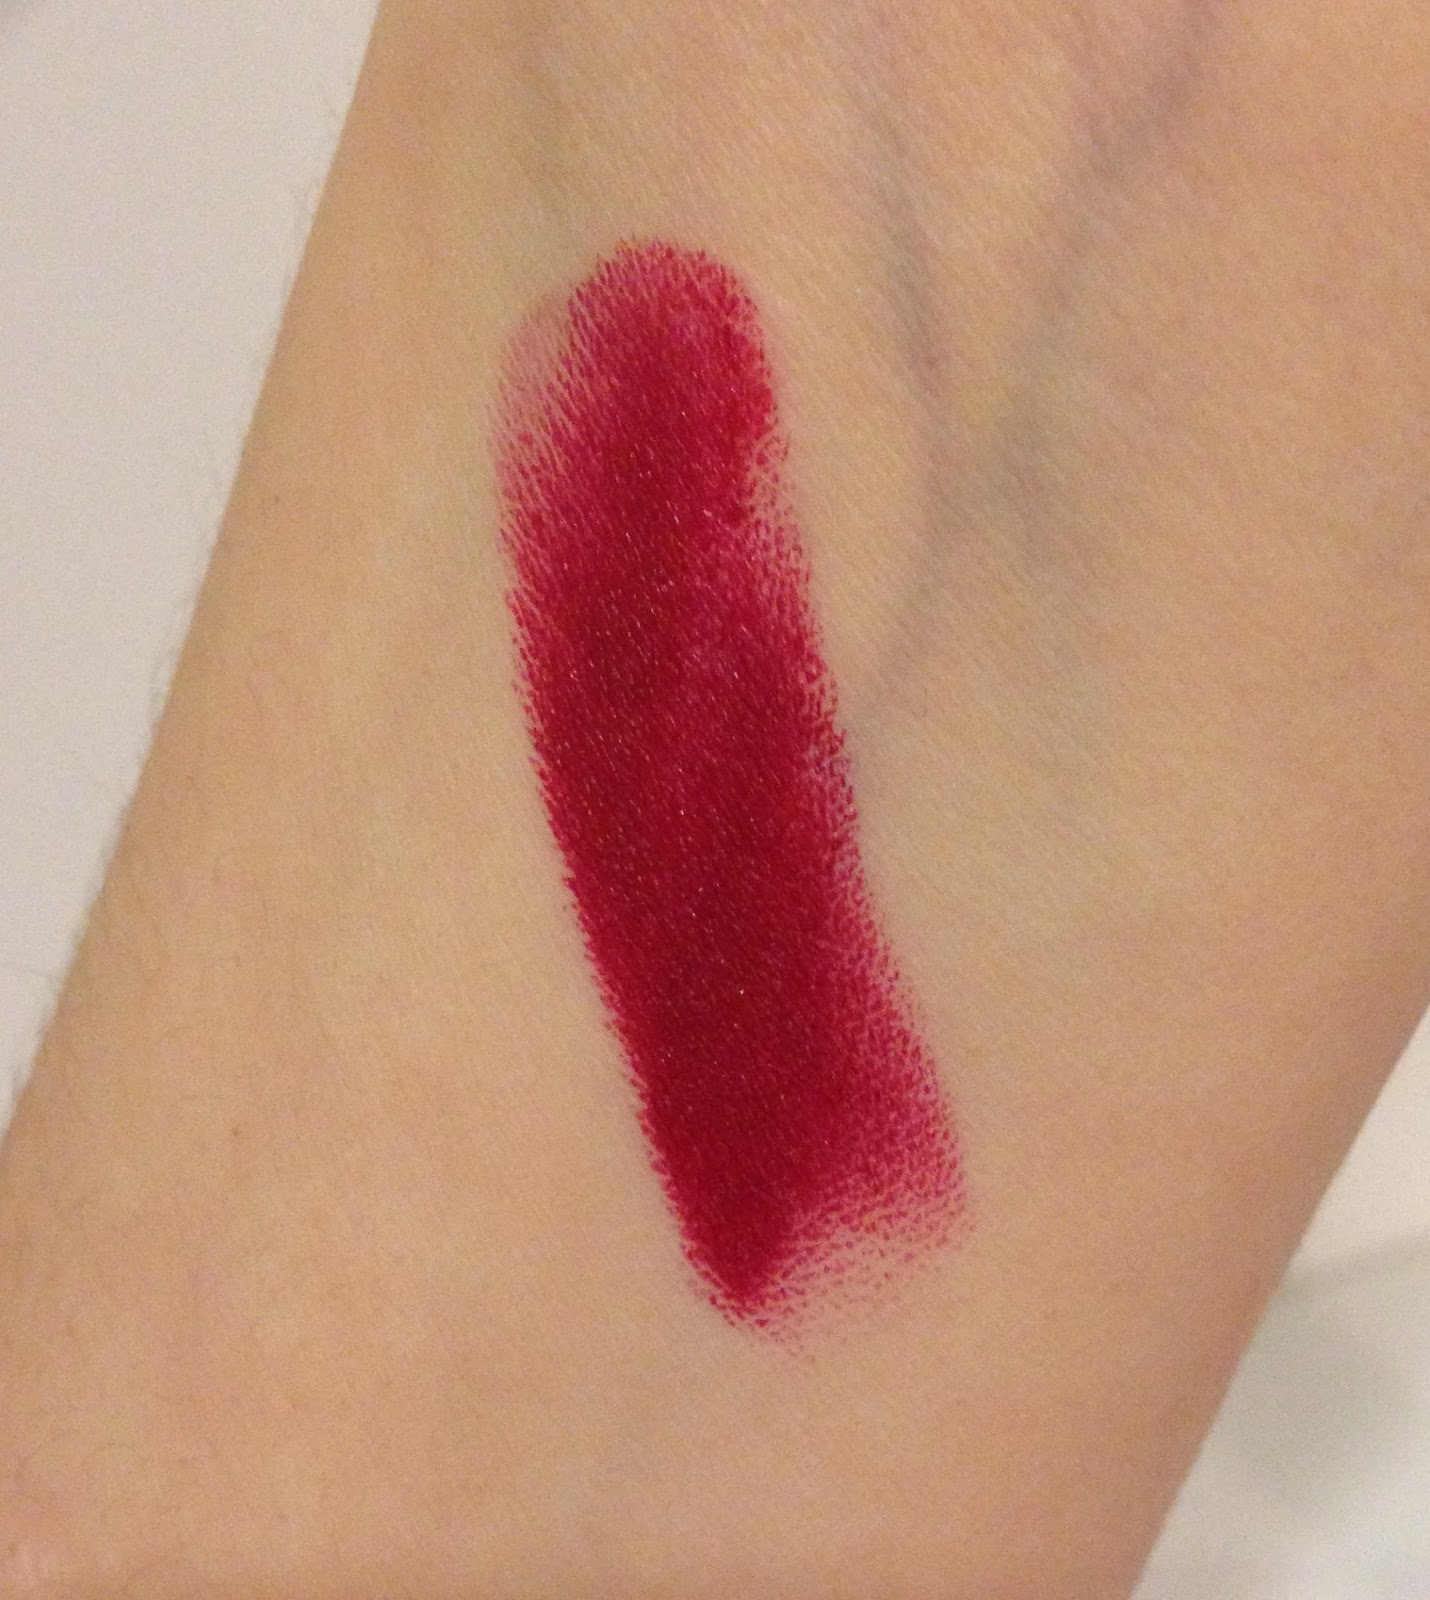 Rimmel London Kate Moss lipstick in 107 perfect A/W shade